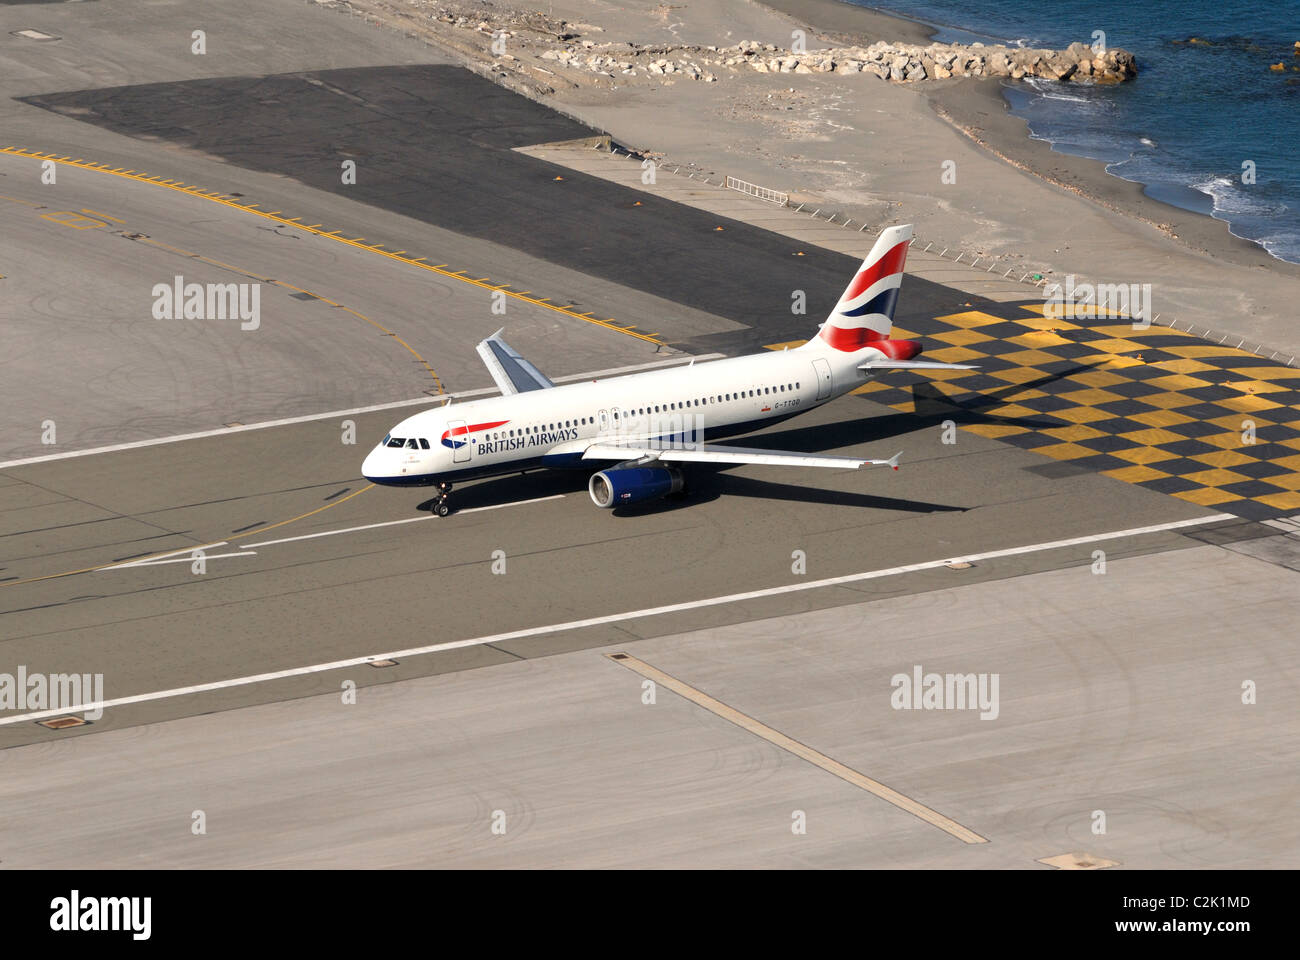 British Airways twin engined jet waiting to take off at the end of Gibraltars runway - Stock Image